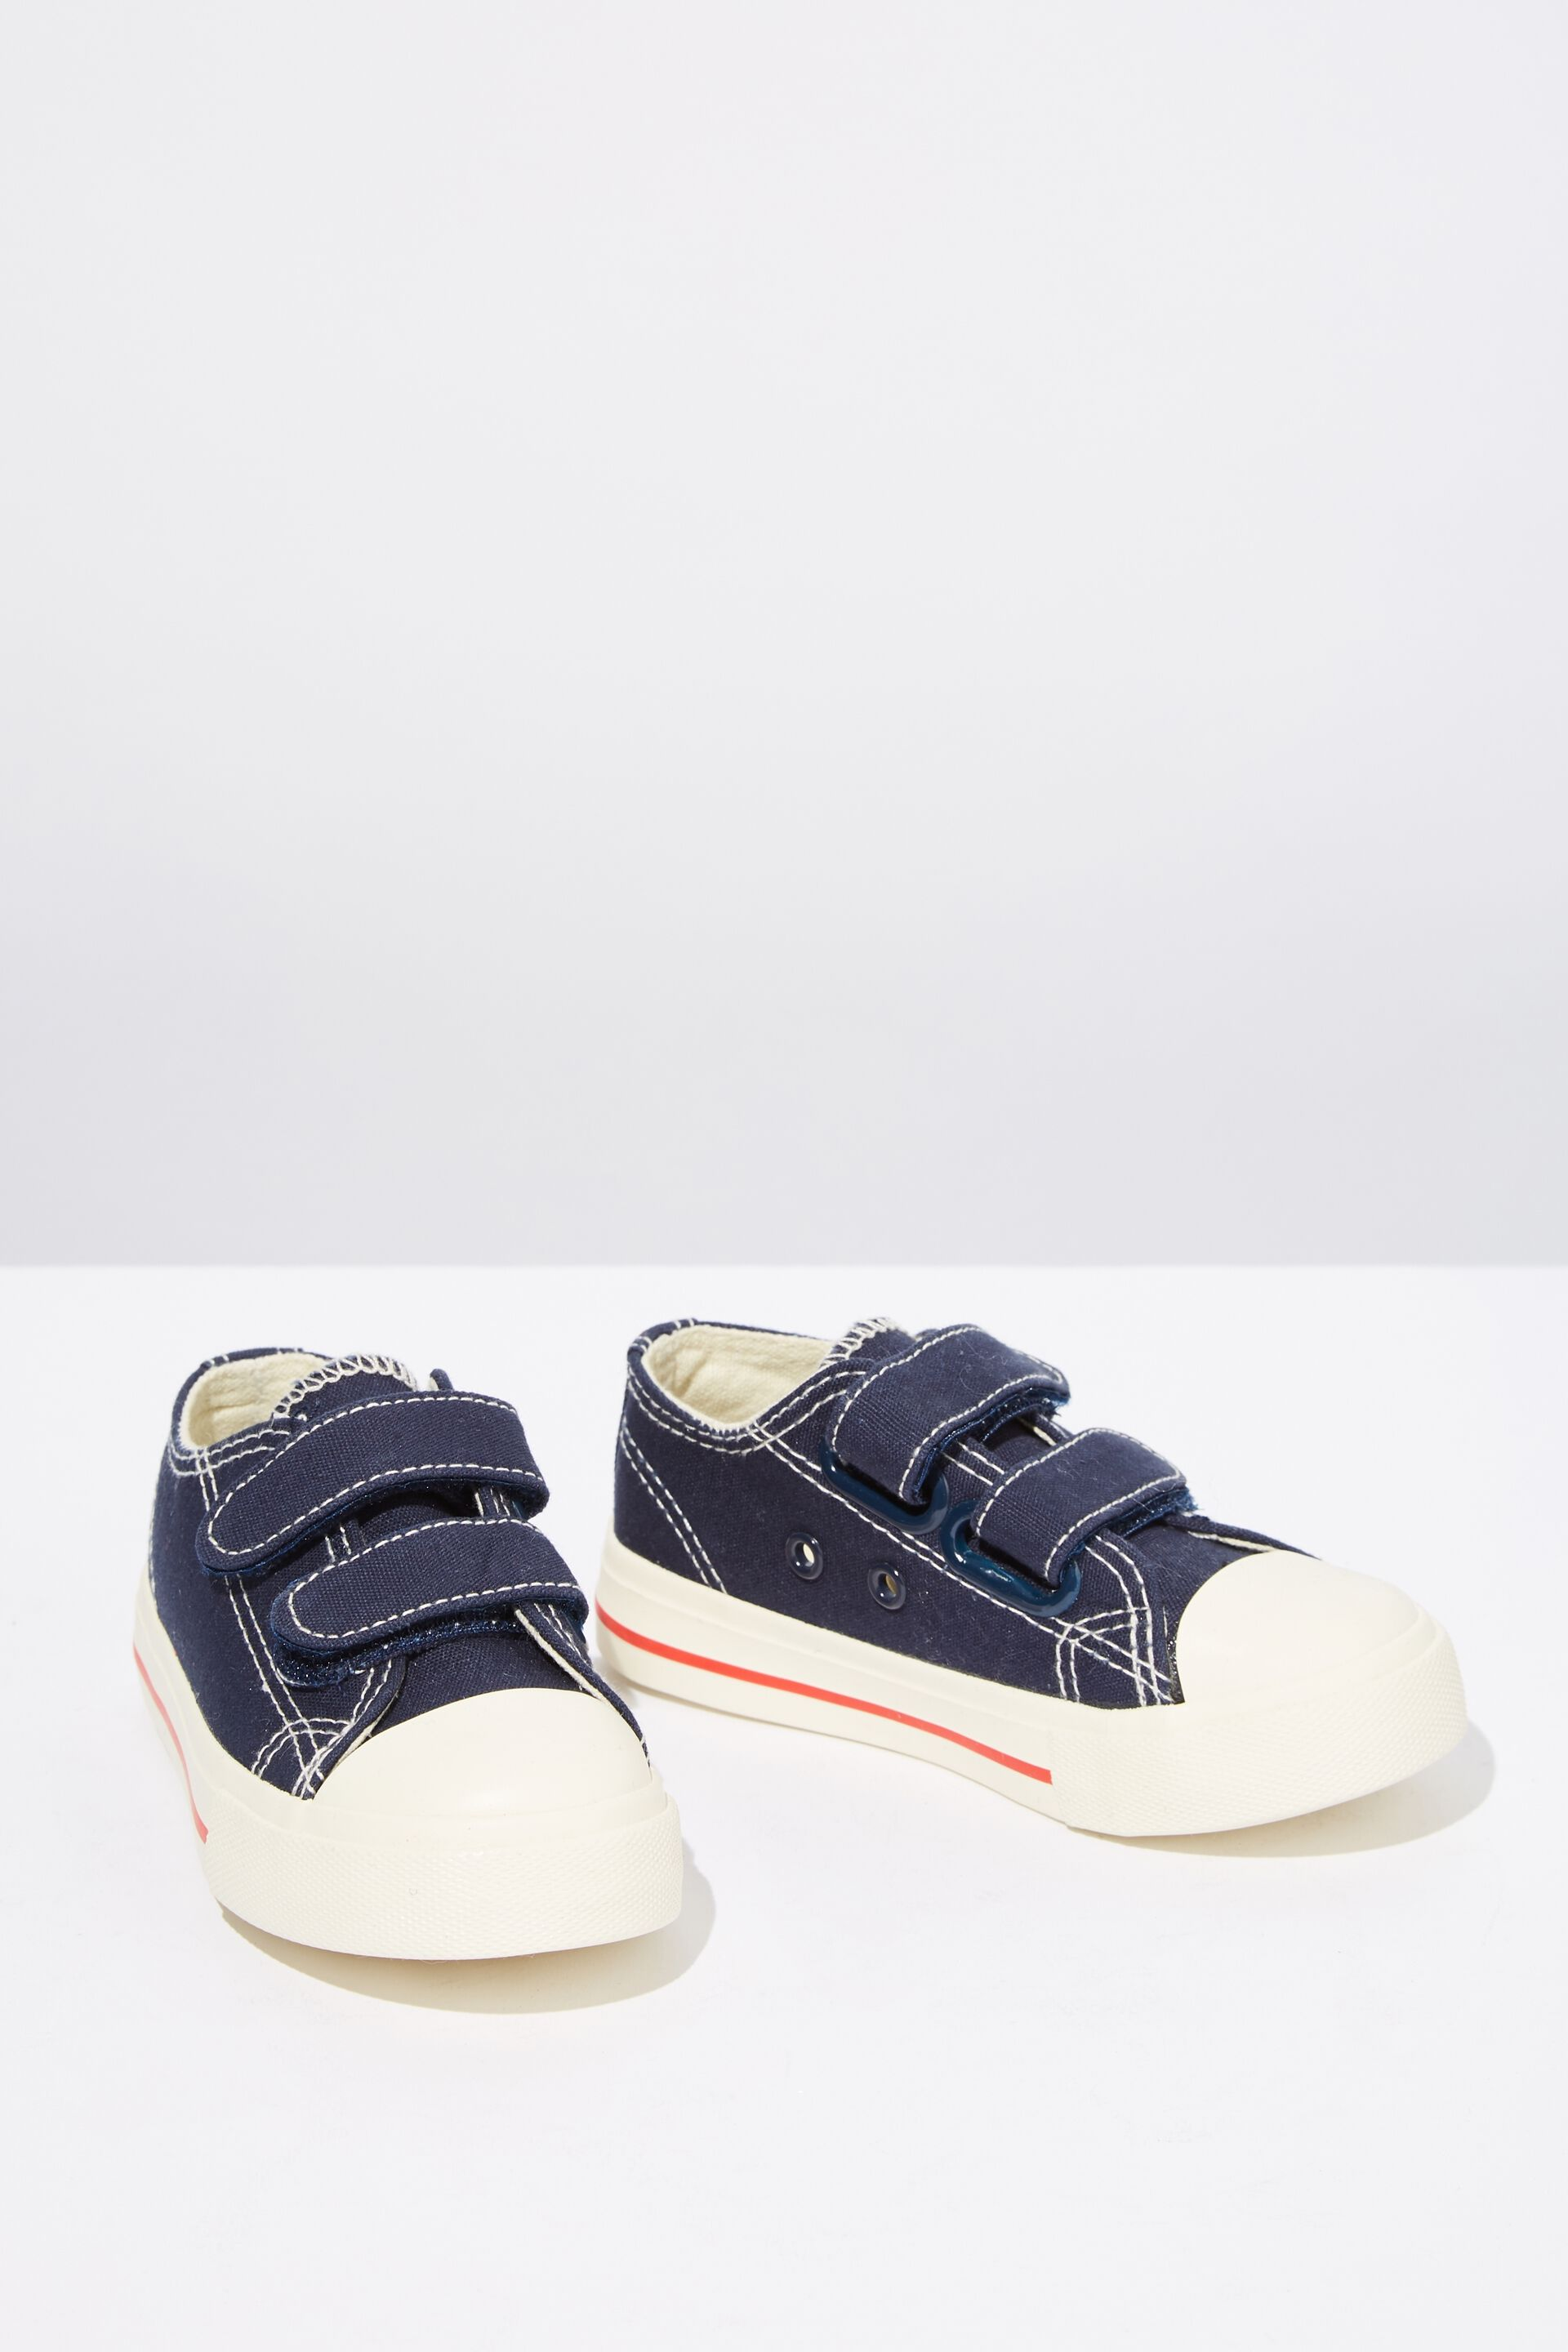 Baby Boy Shoes - Sneakers \u0026 More